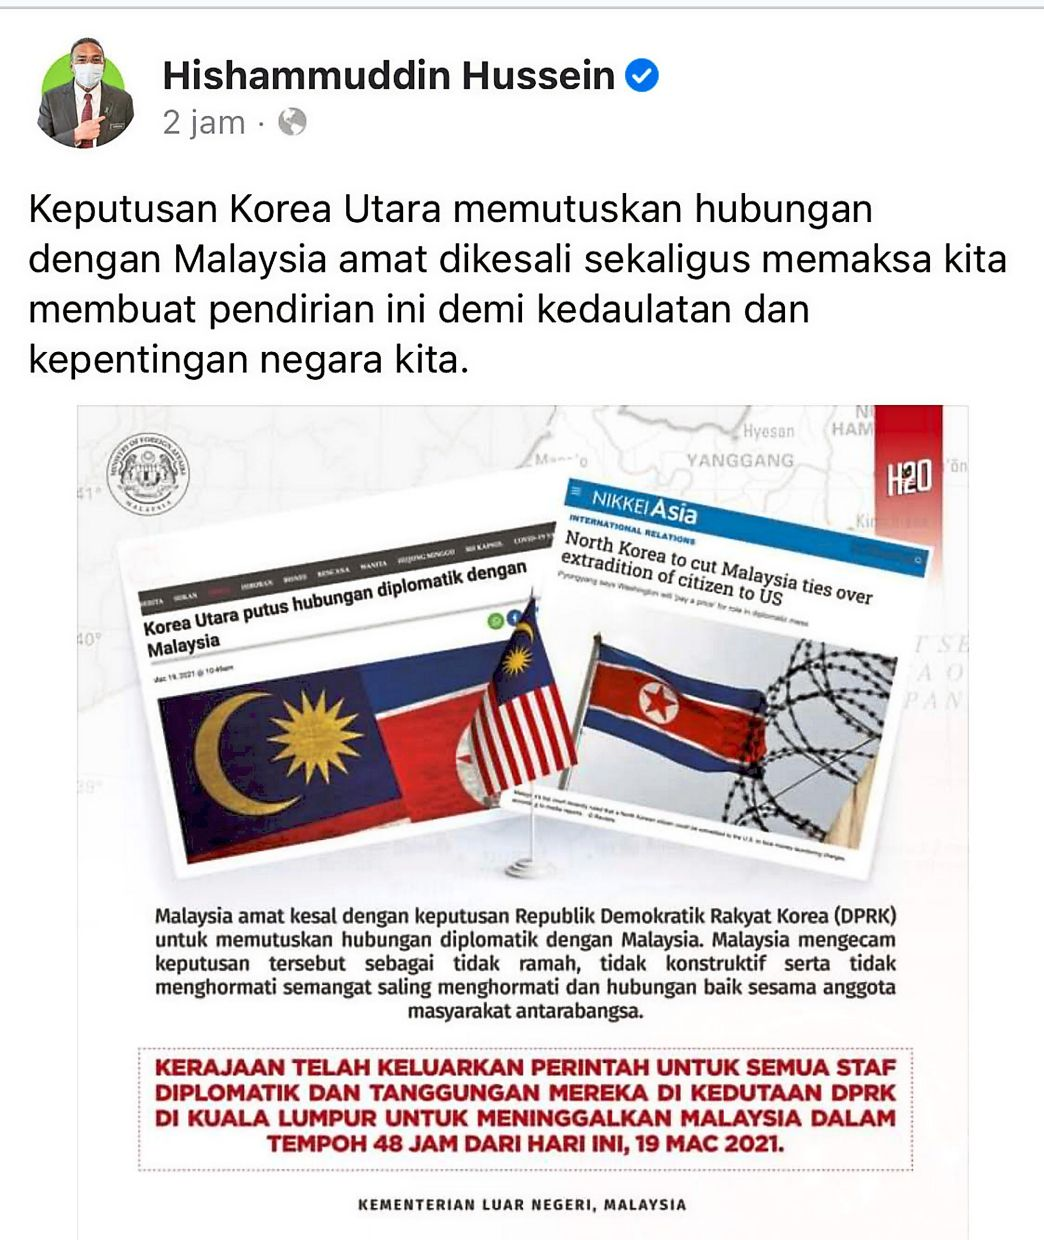 Matter of concern: A screencap of Foreign Minister Datuk Seri Hishammuddin Hussein's Facebook post expressing his regret over North Korea's decision to sever diplomatic ties with Malaysia.